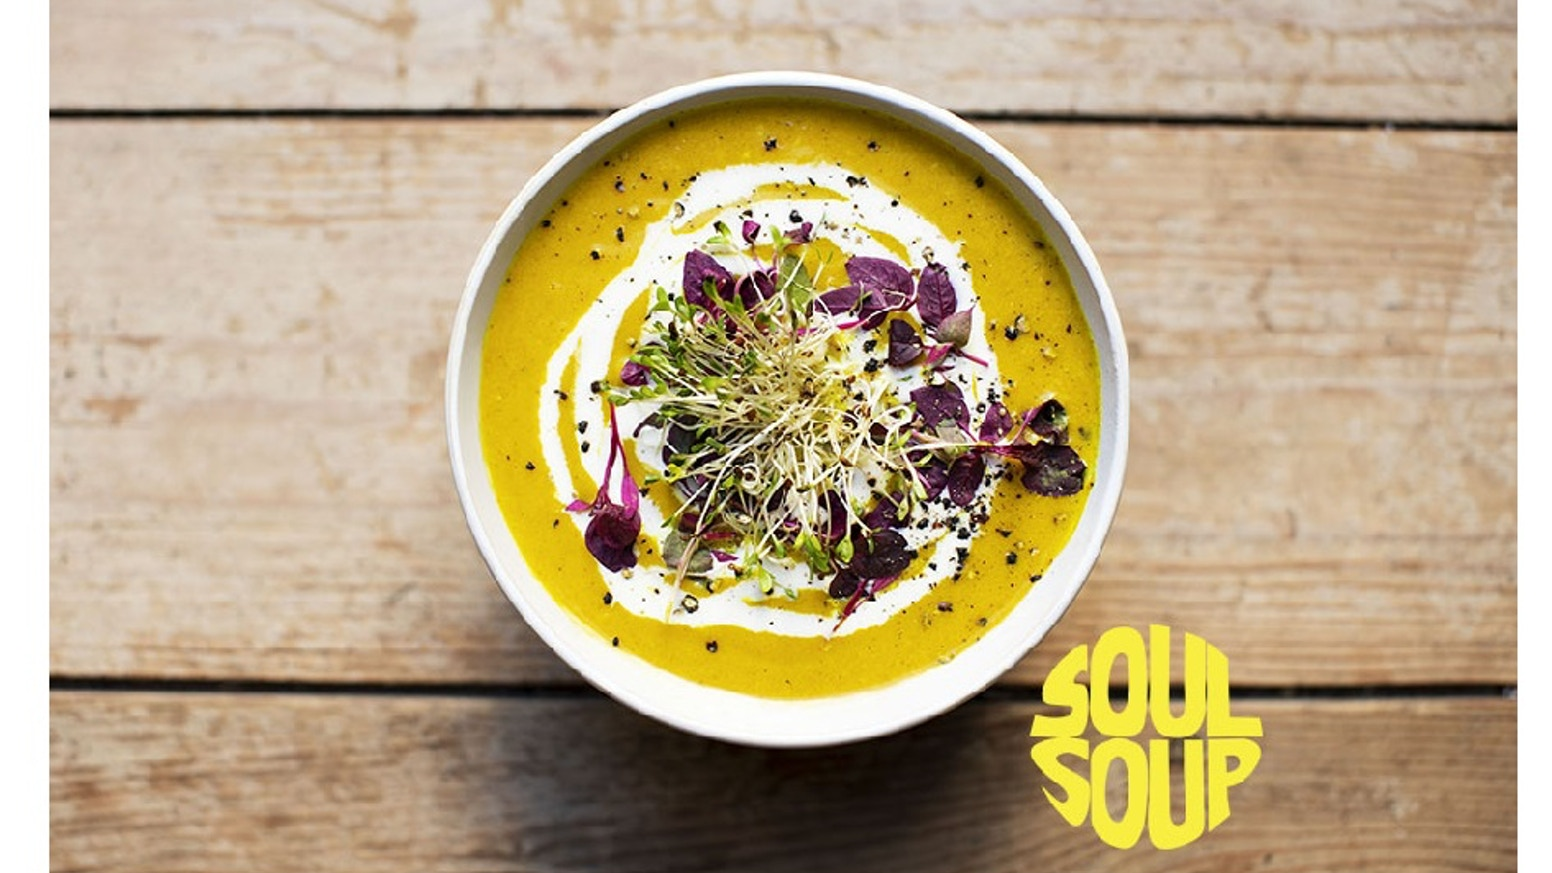 Vegan Social Enterprise Cafe. Creating dishes that are good for you & the planet from rescued food surplus.